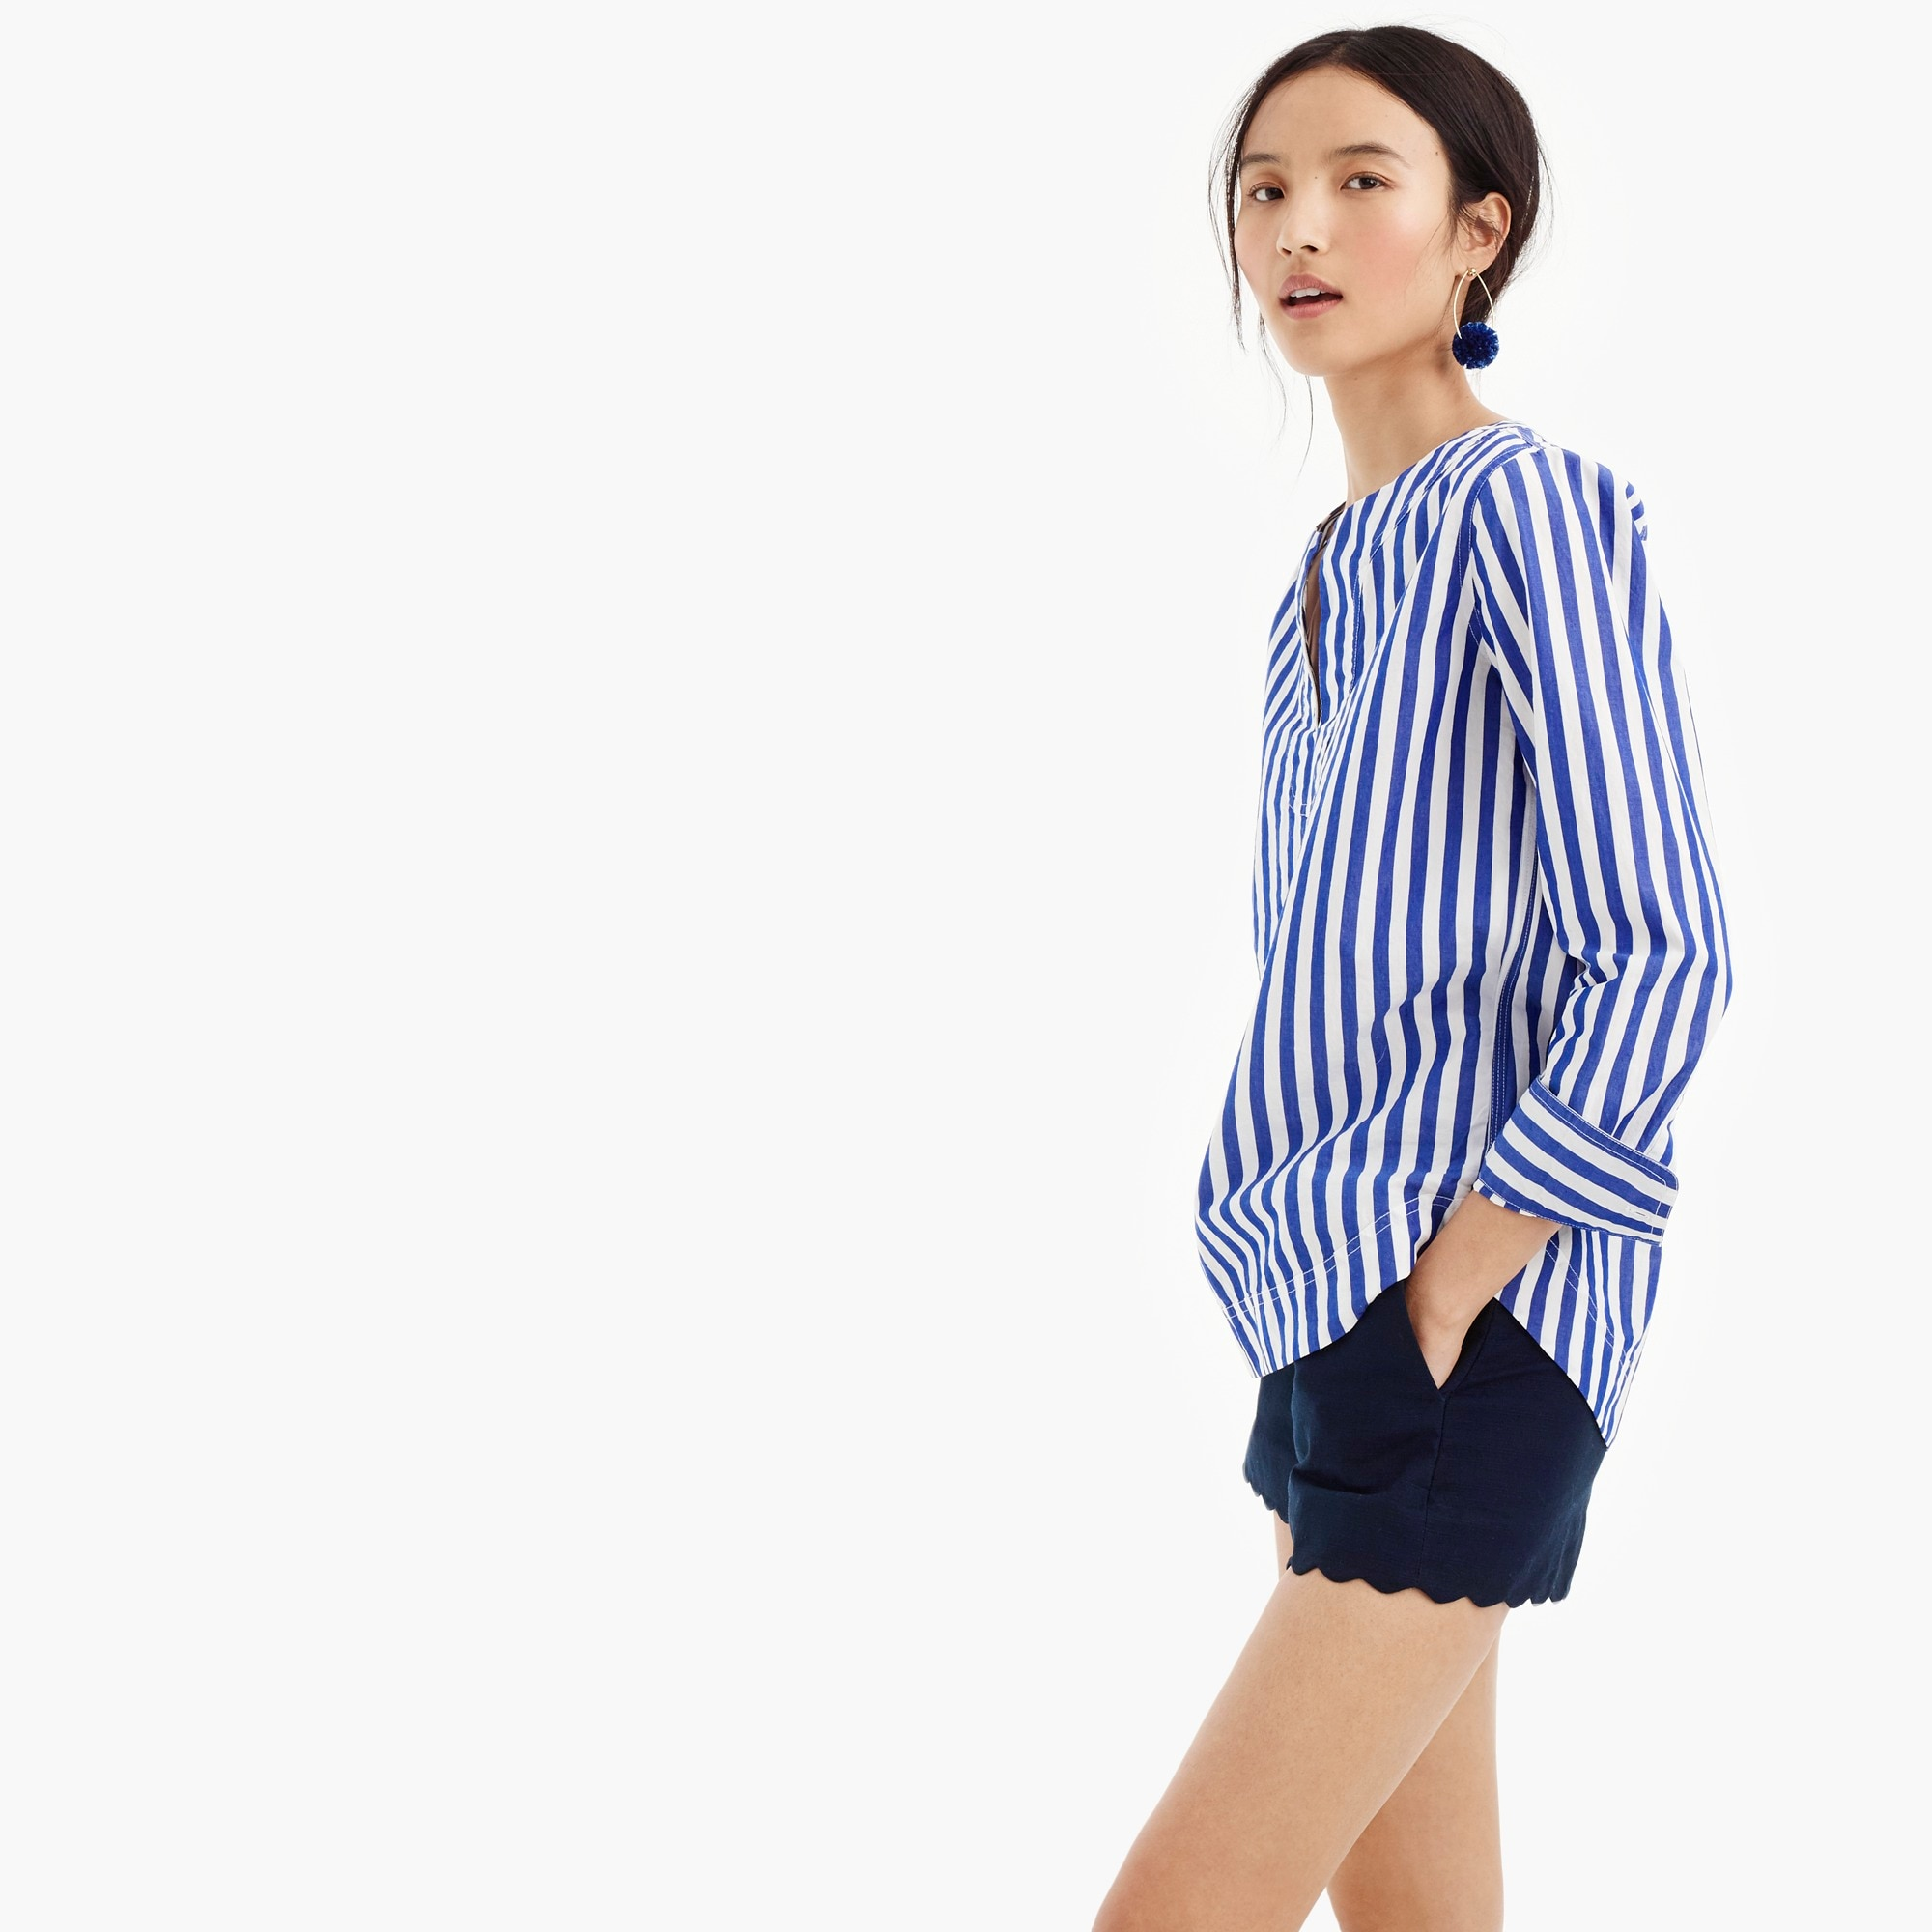 Image 1 for Petite tunic in bold stripe cotton poplin